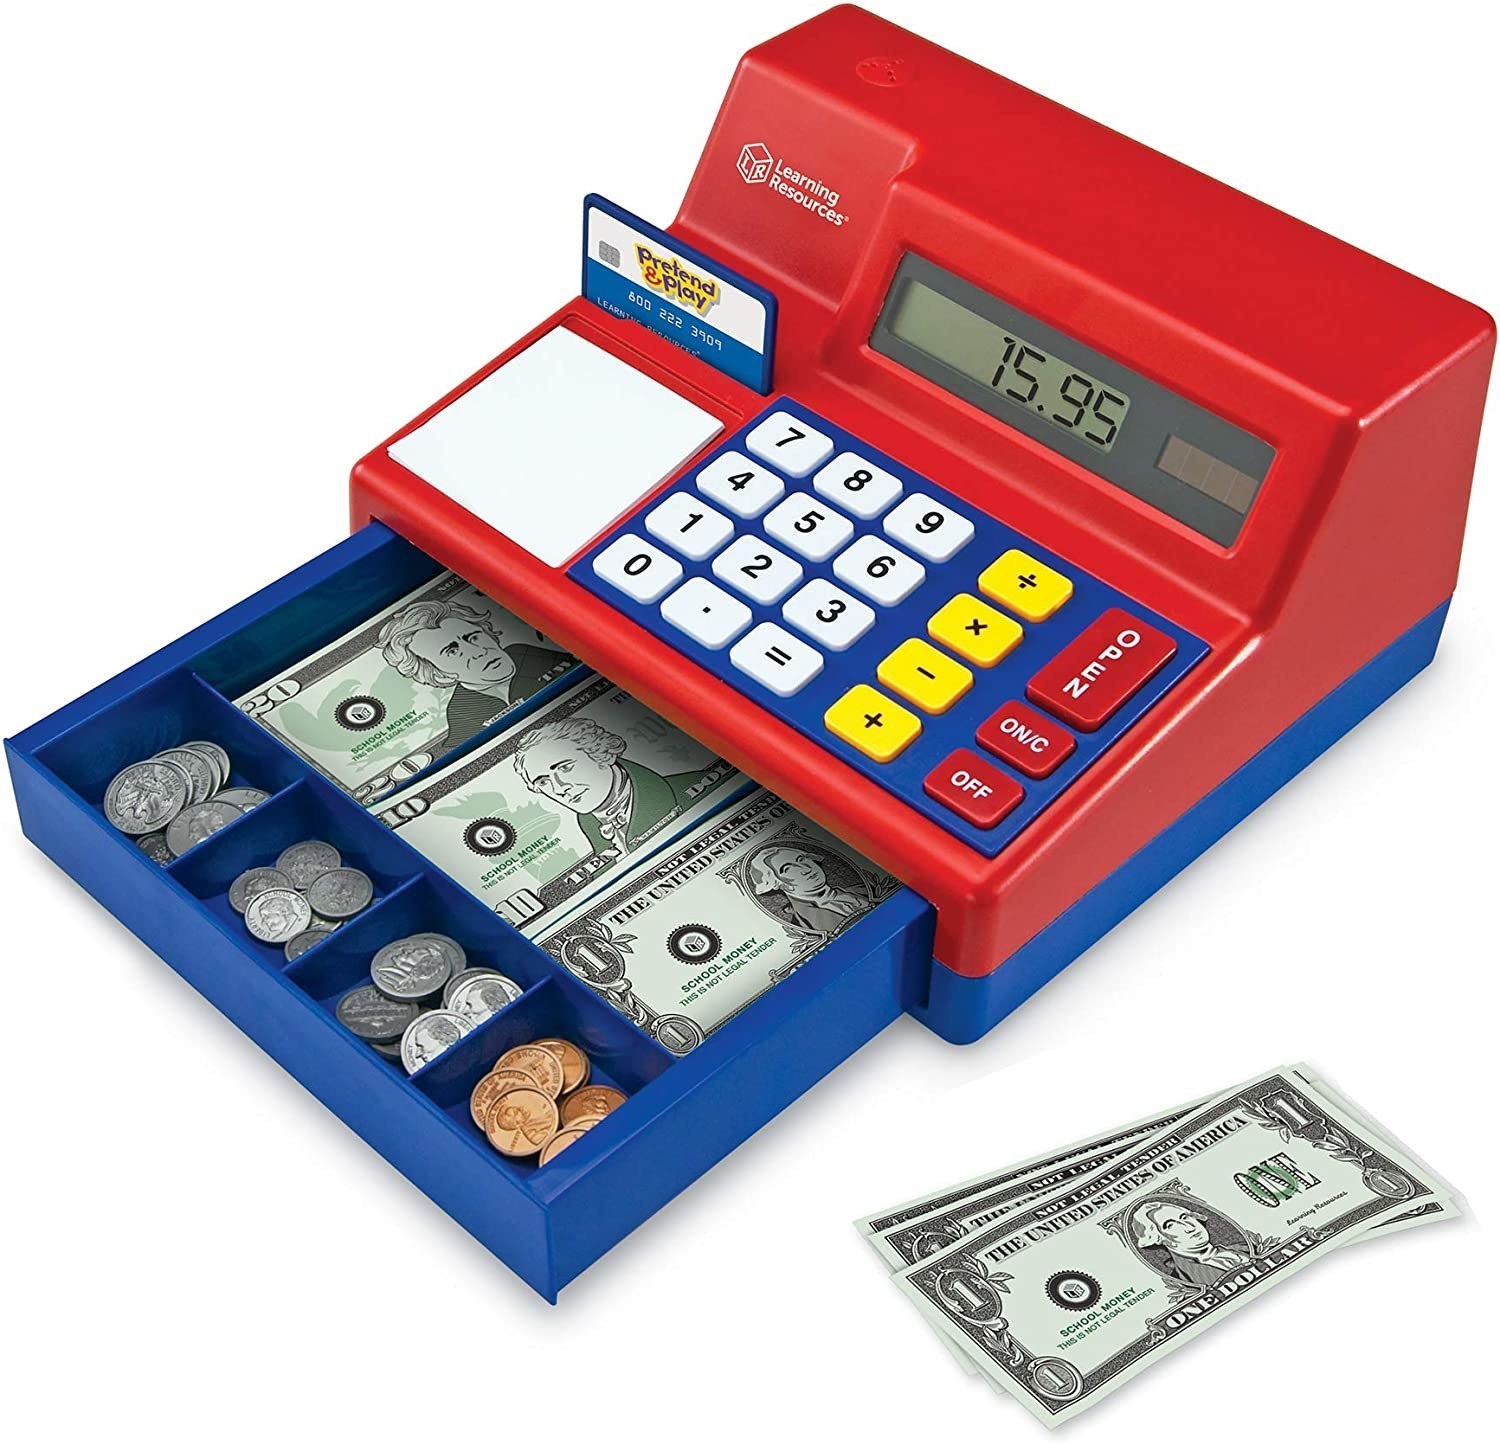 A plastic, primary-colored cash register that's open with play cash and change